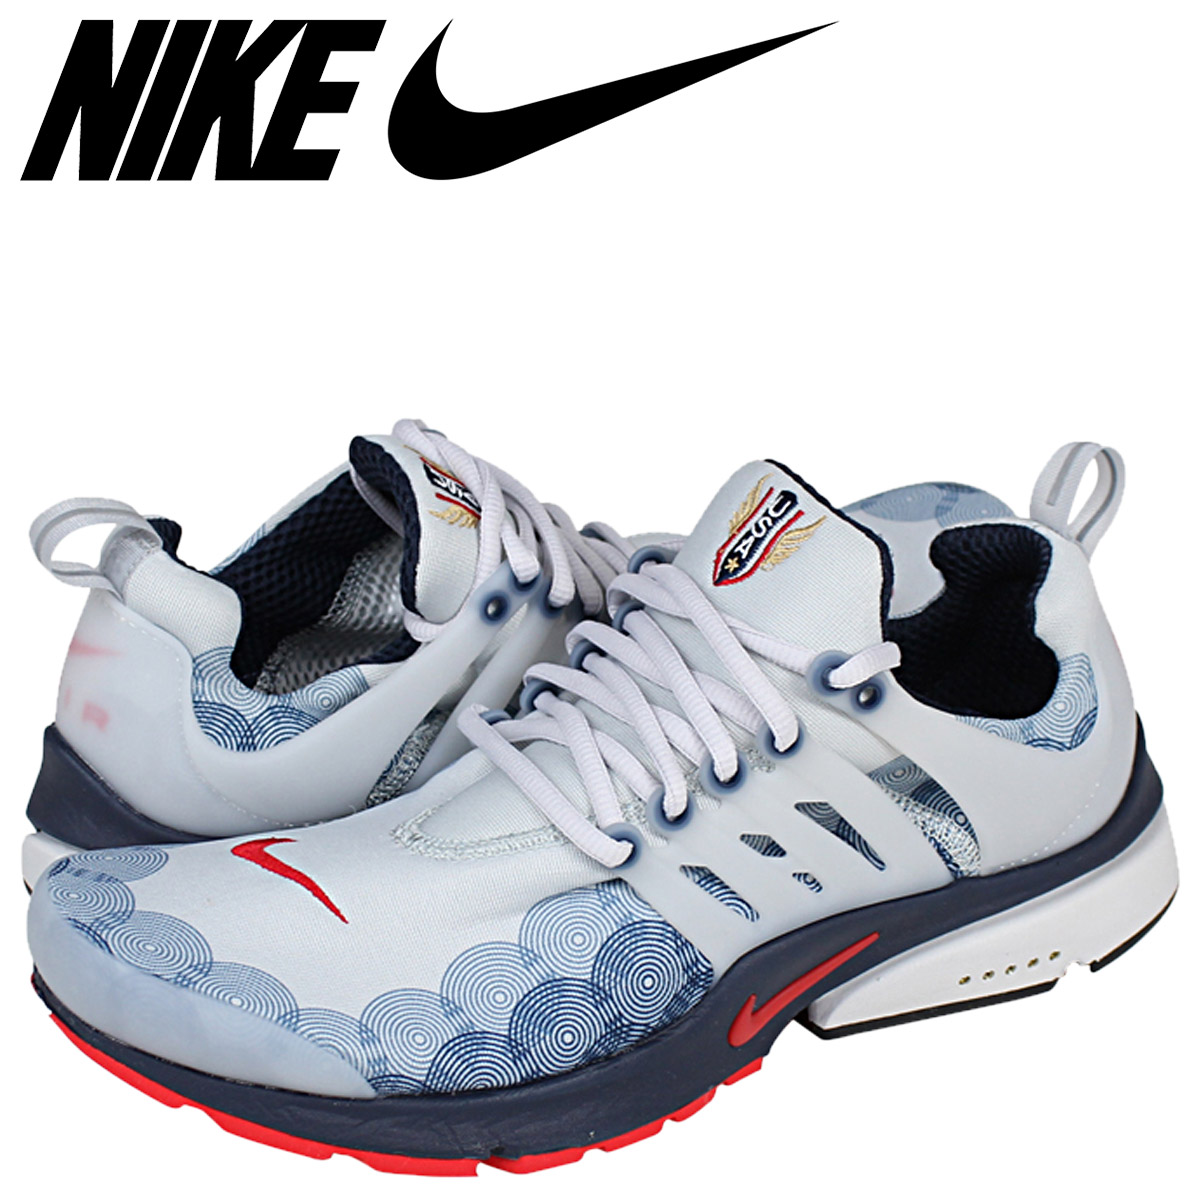 Nike Air Presto GPX 'USA' | shoes | Shoes, Nike shoes, Sneakers